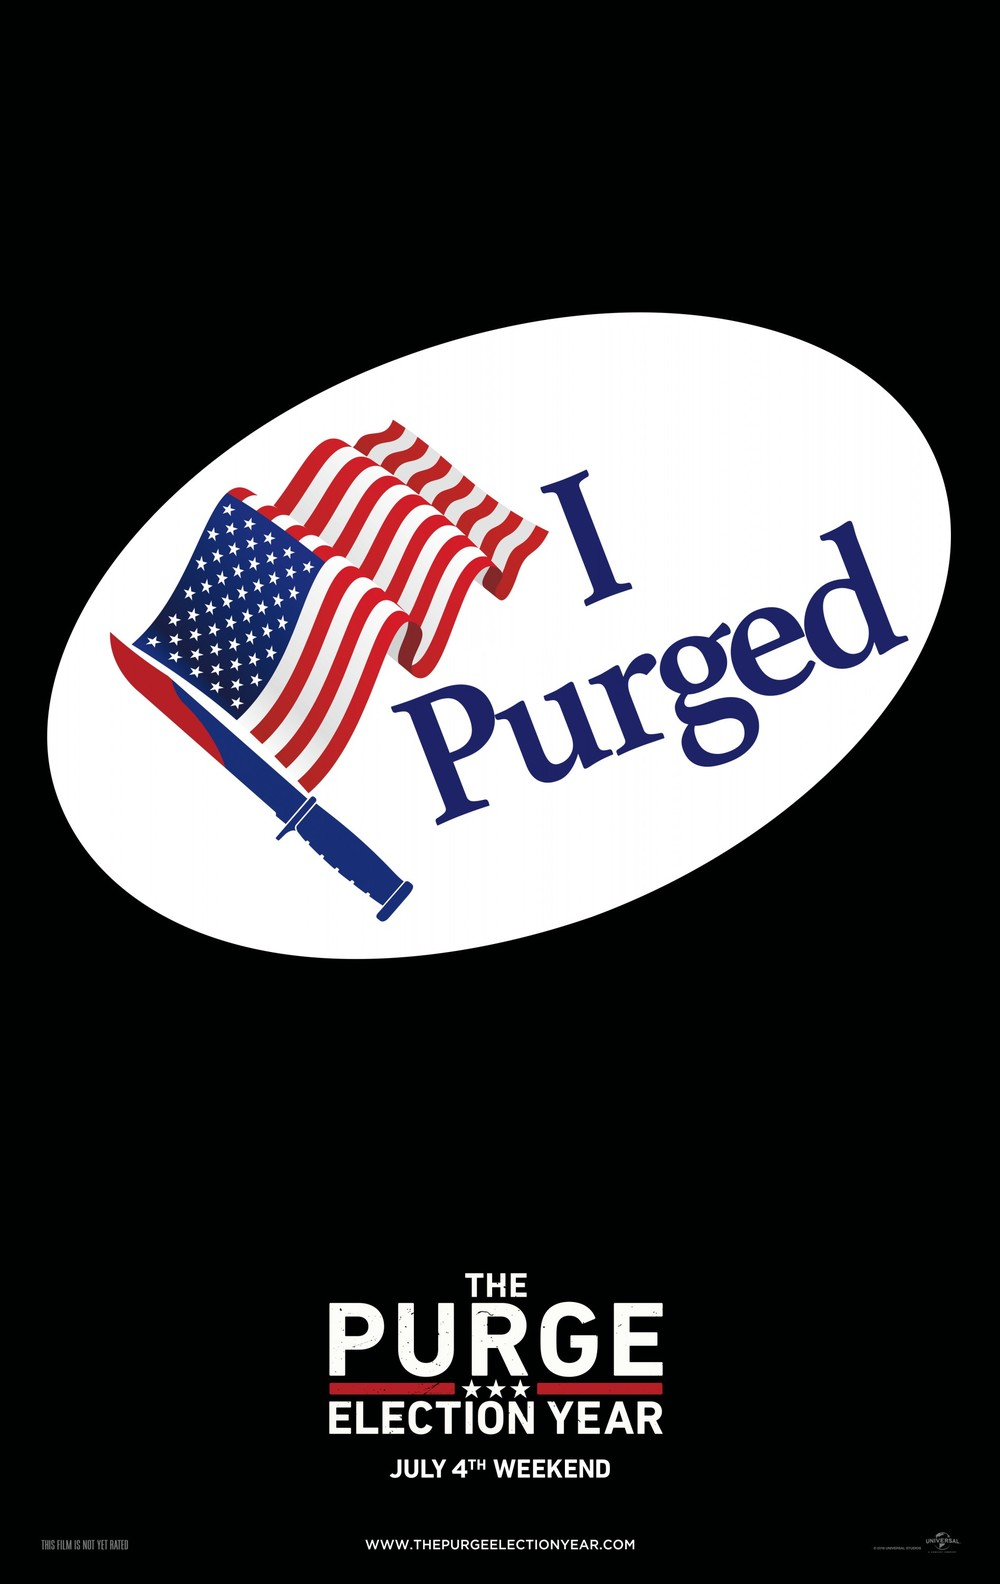 Download Film Purge Election Year 2016